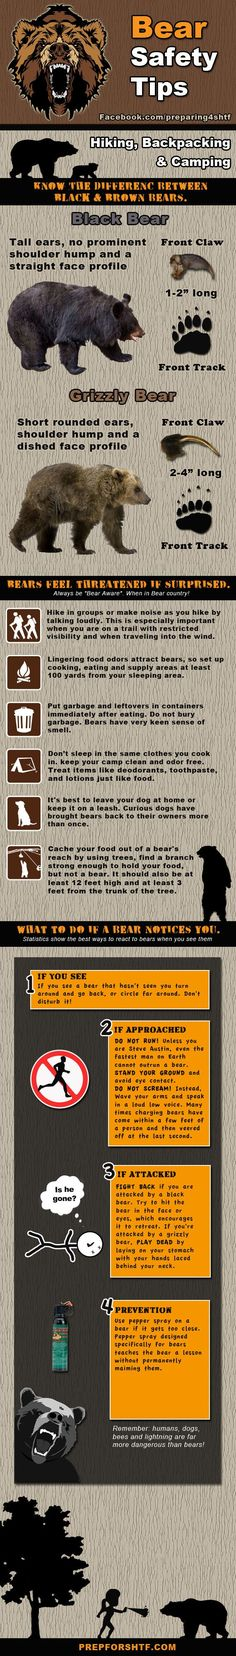 Bear Safety Infographic. You should always be prepared. It could save your life or the life of a loved one.